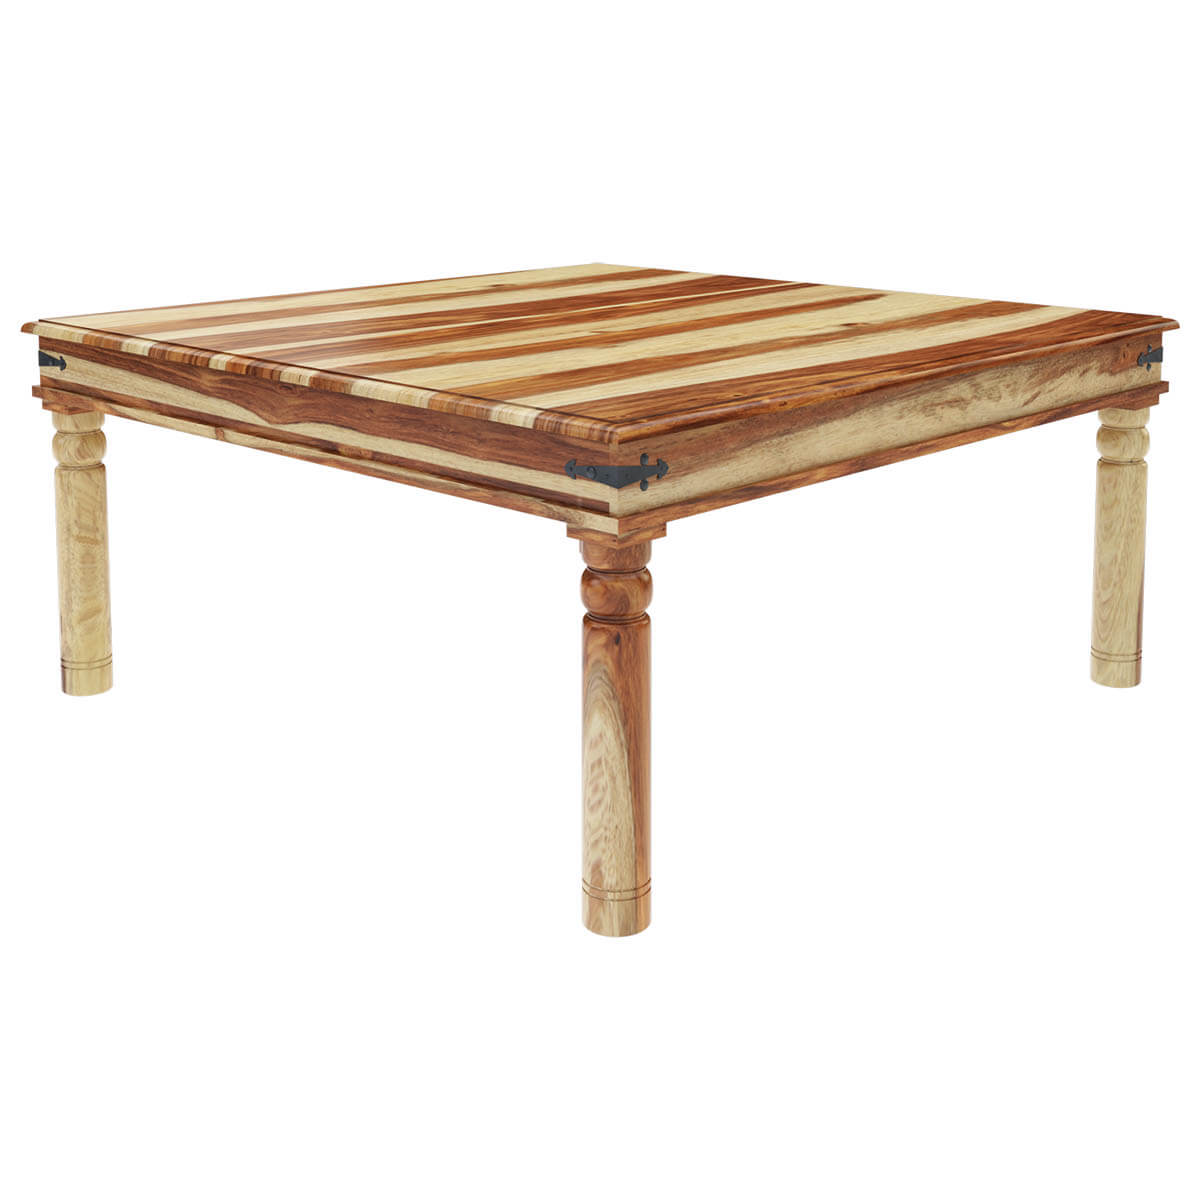 Peoria Rustic Solid Wood Square Dining Table